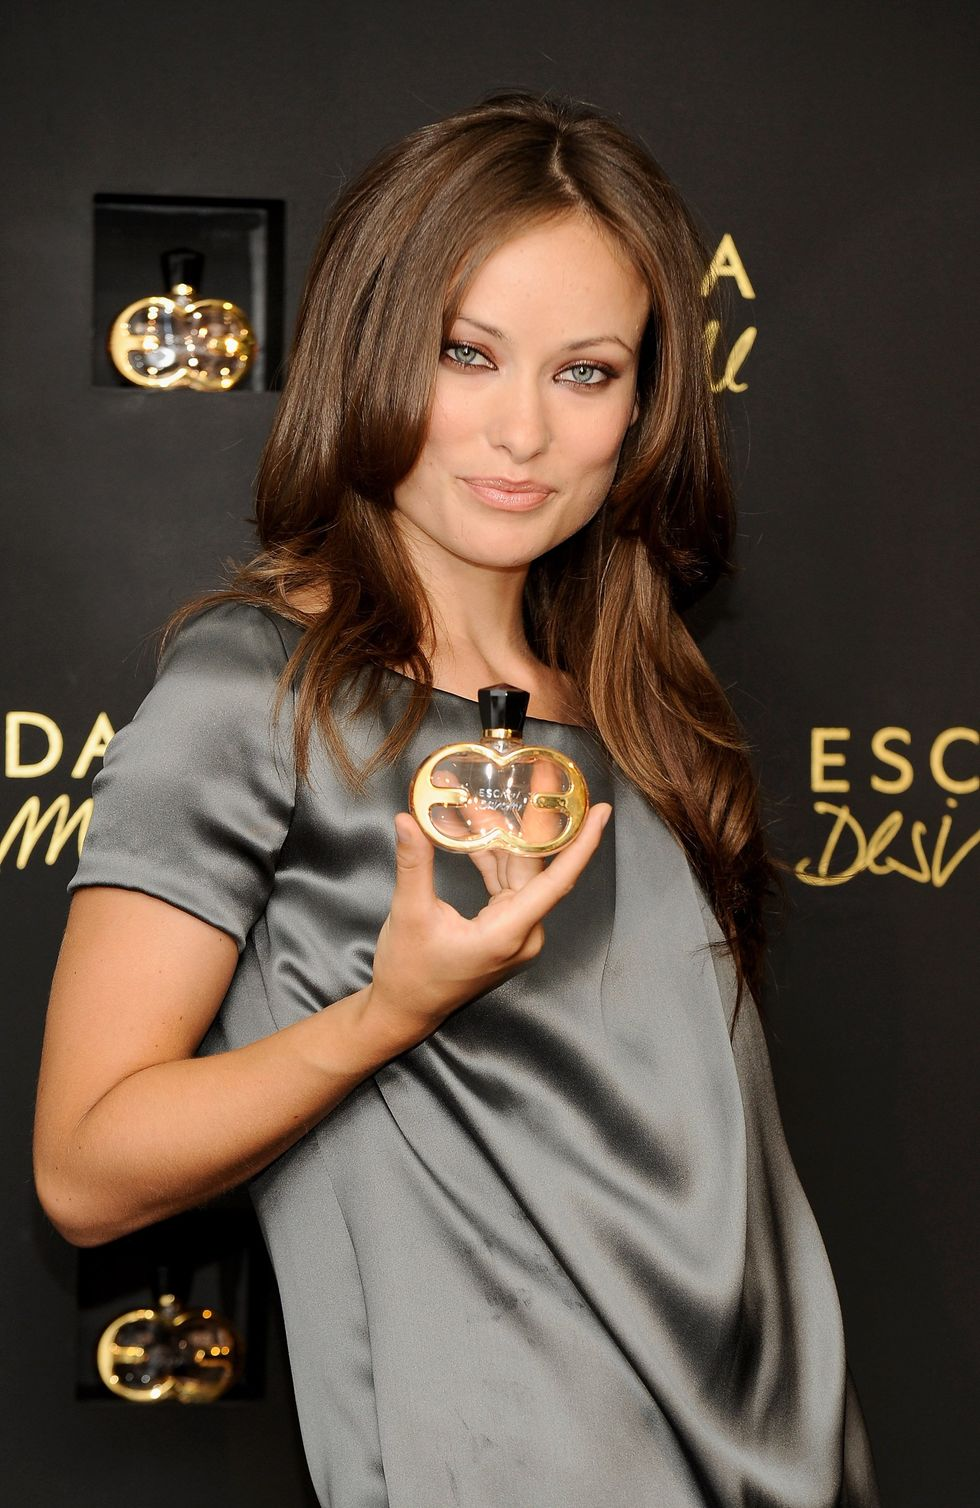 olivia-wilde-escada-fragance-desire-me-presentation-in-madrid-01